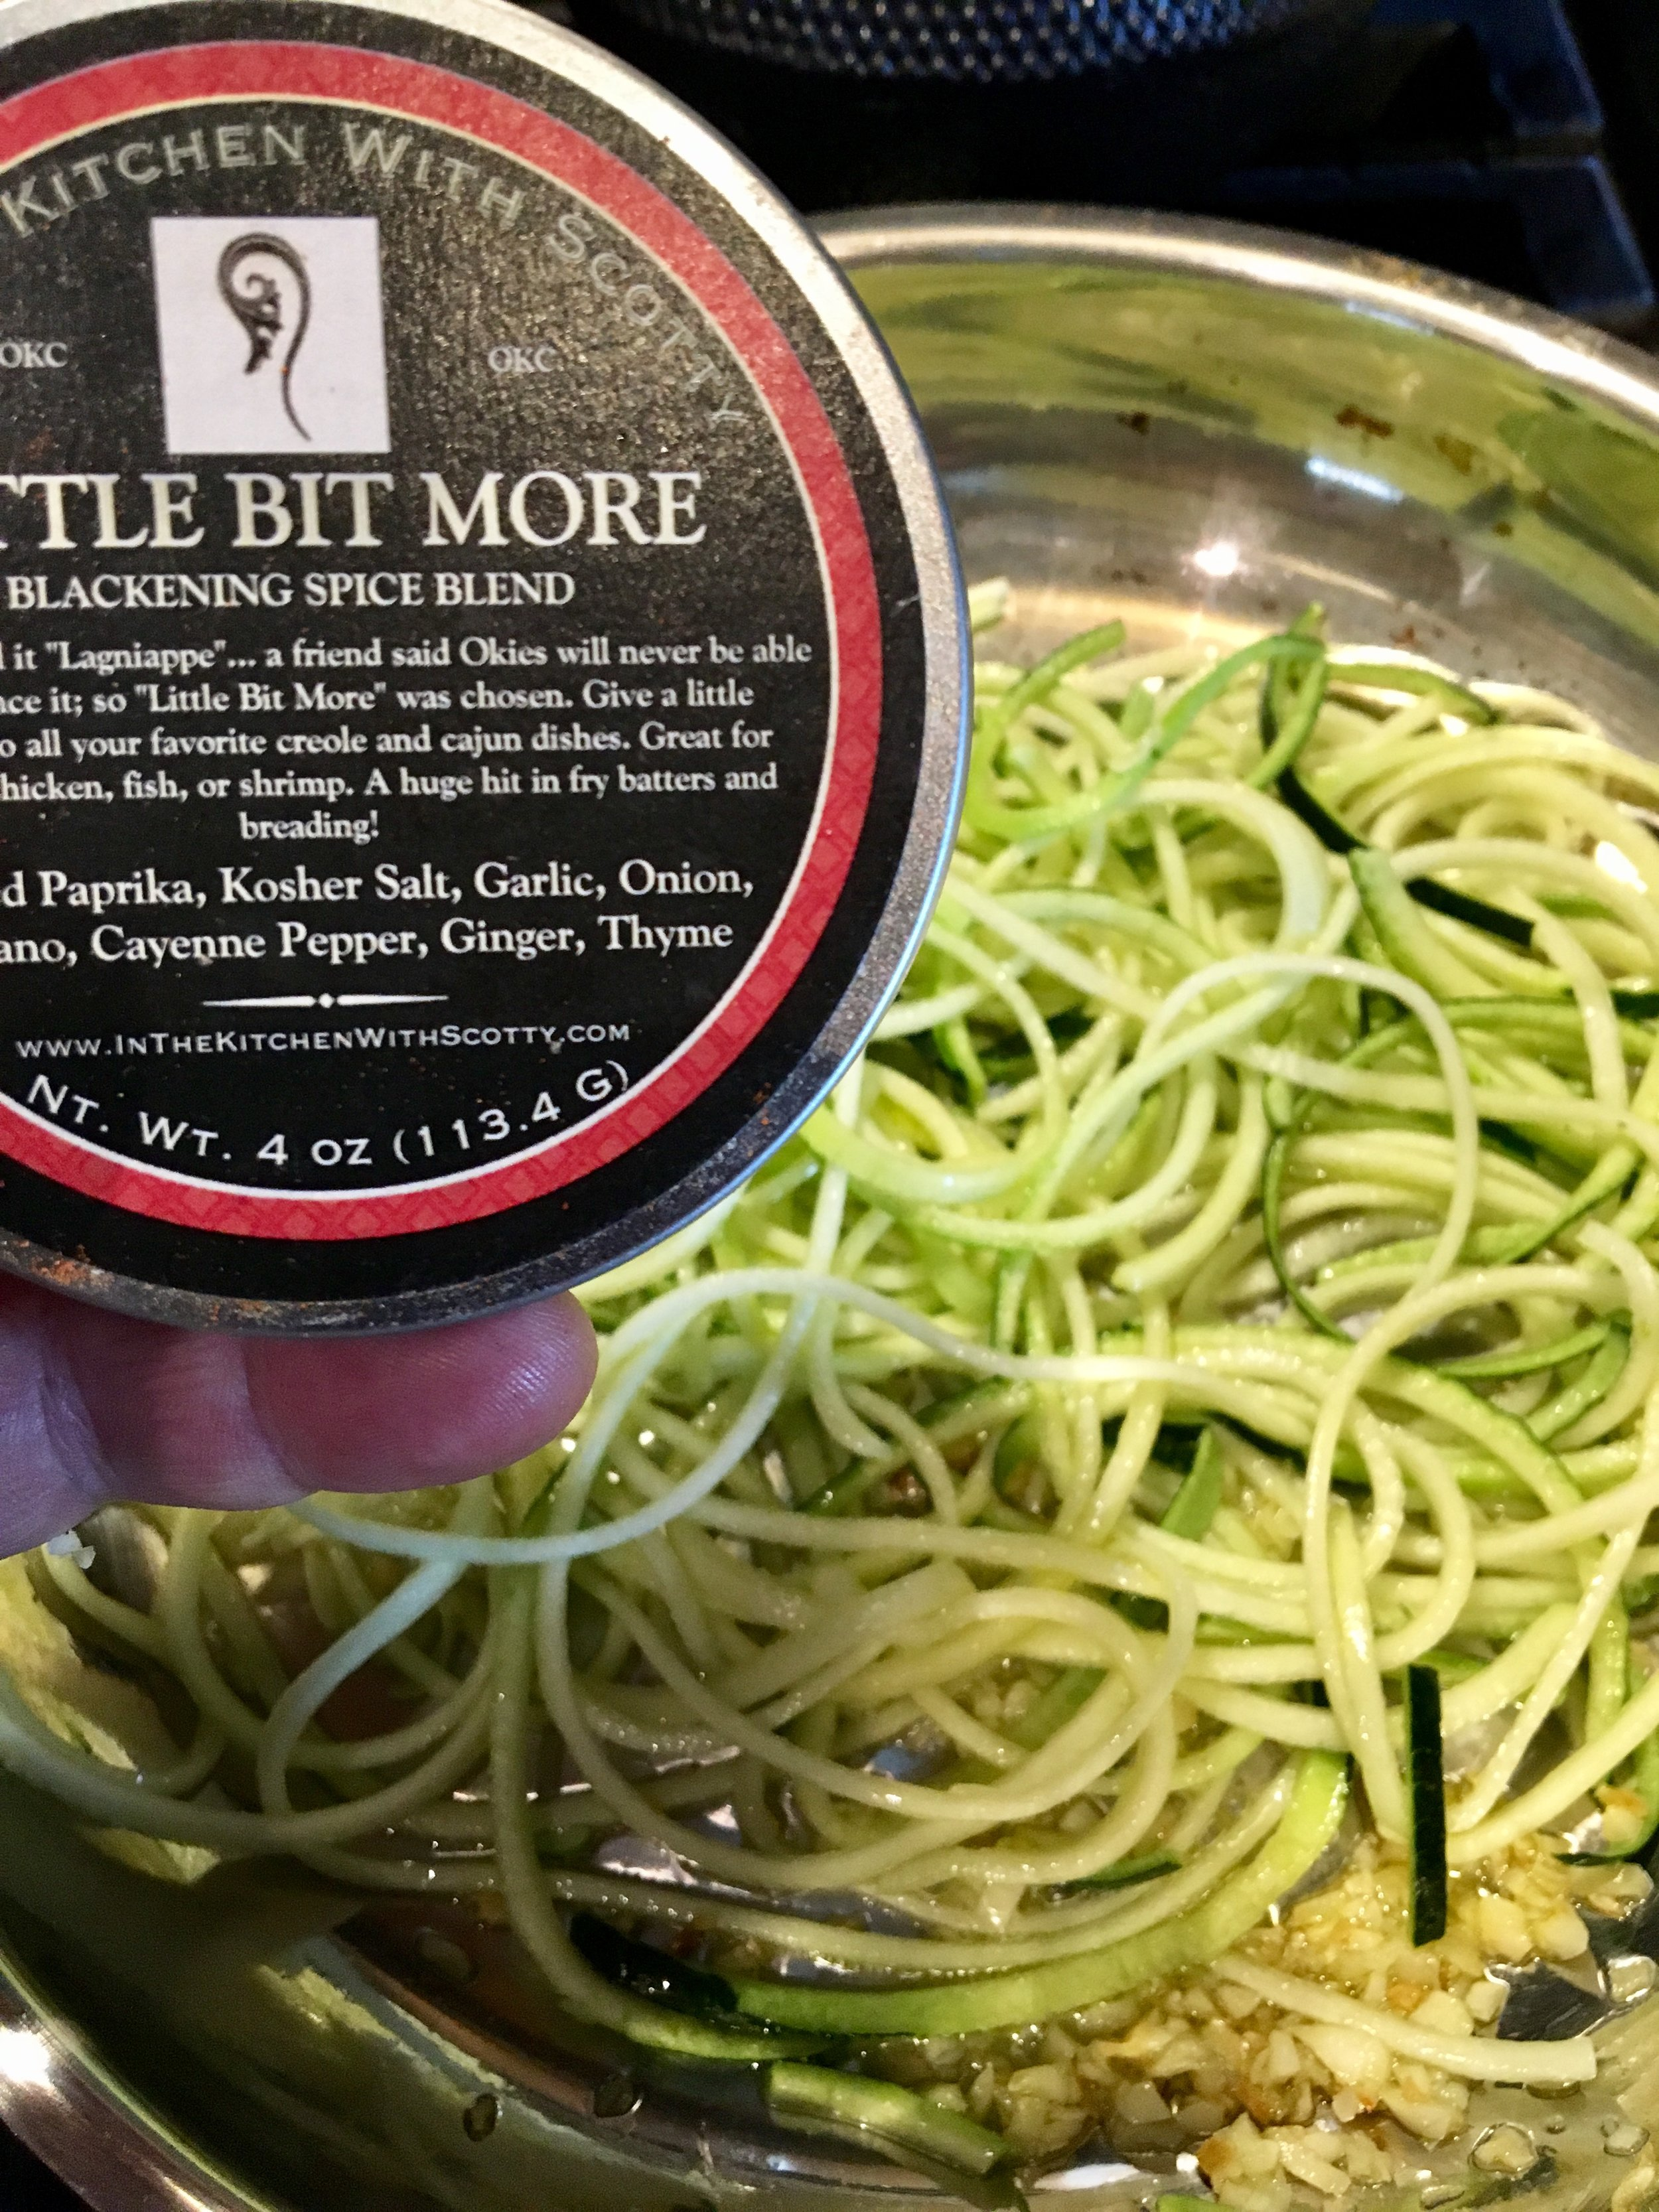 Zucchini Noodles and Little Bit More Seasoning... perfect match!